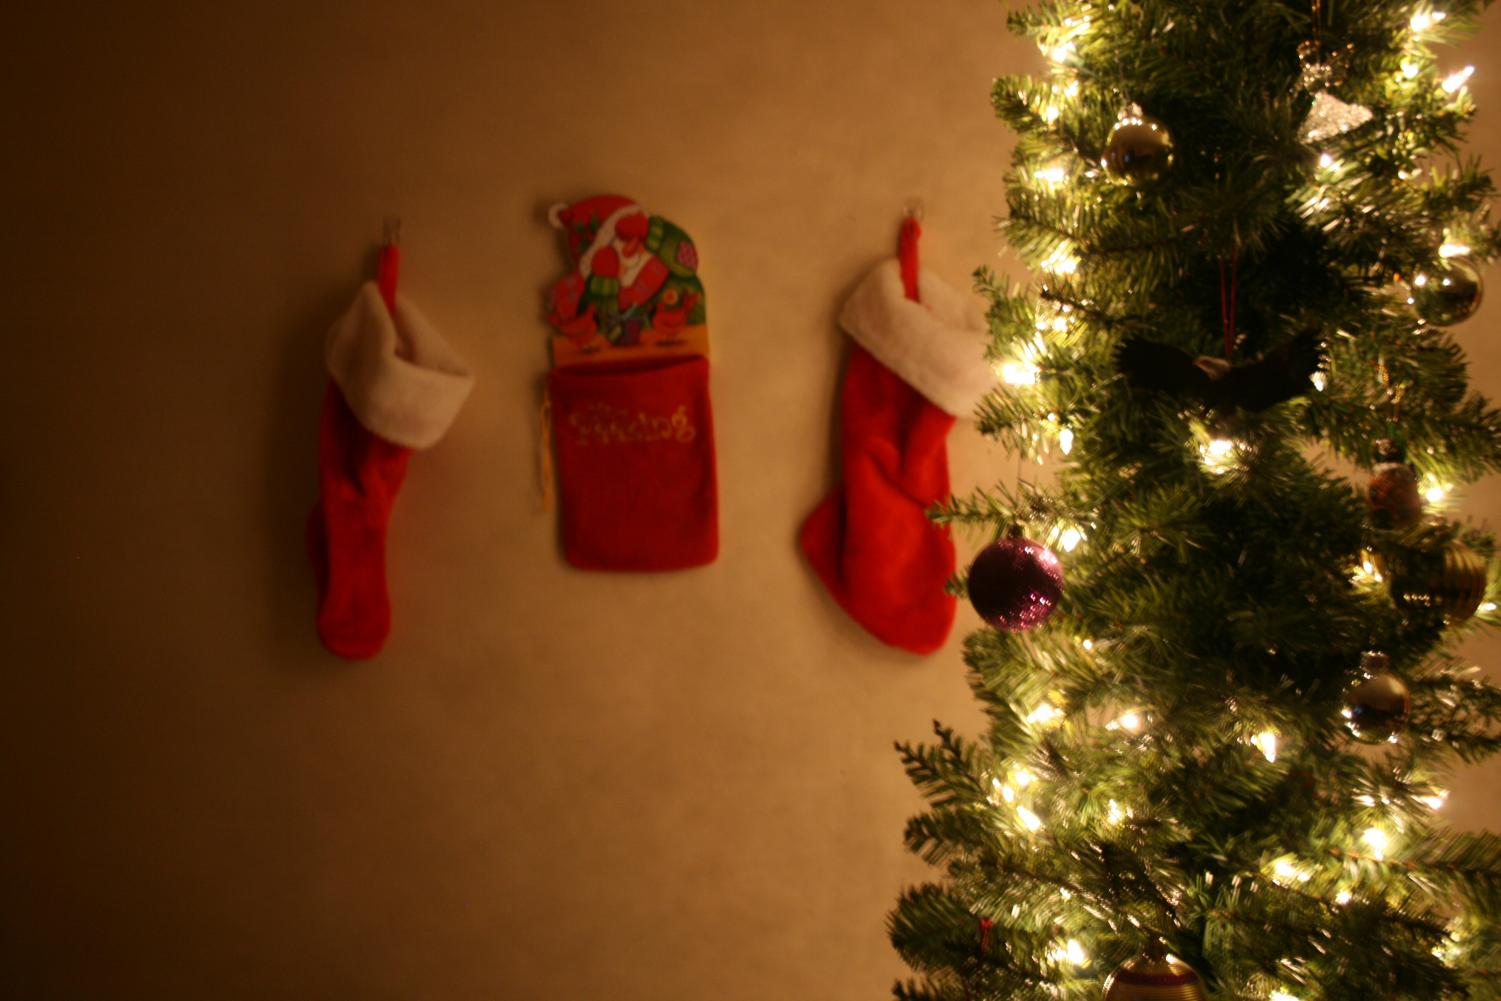 My Christmas tree and stockings that decorate the living room.